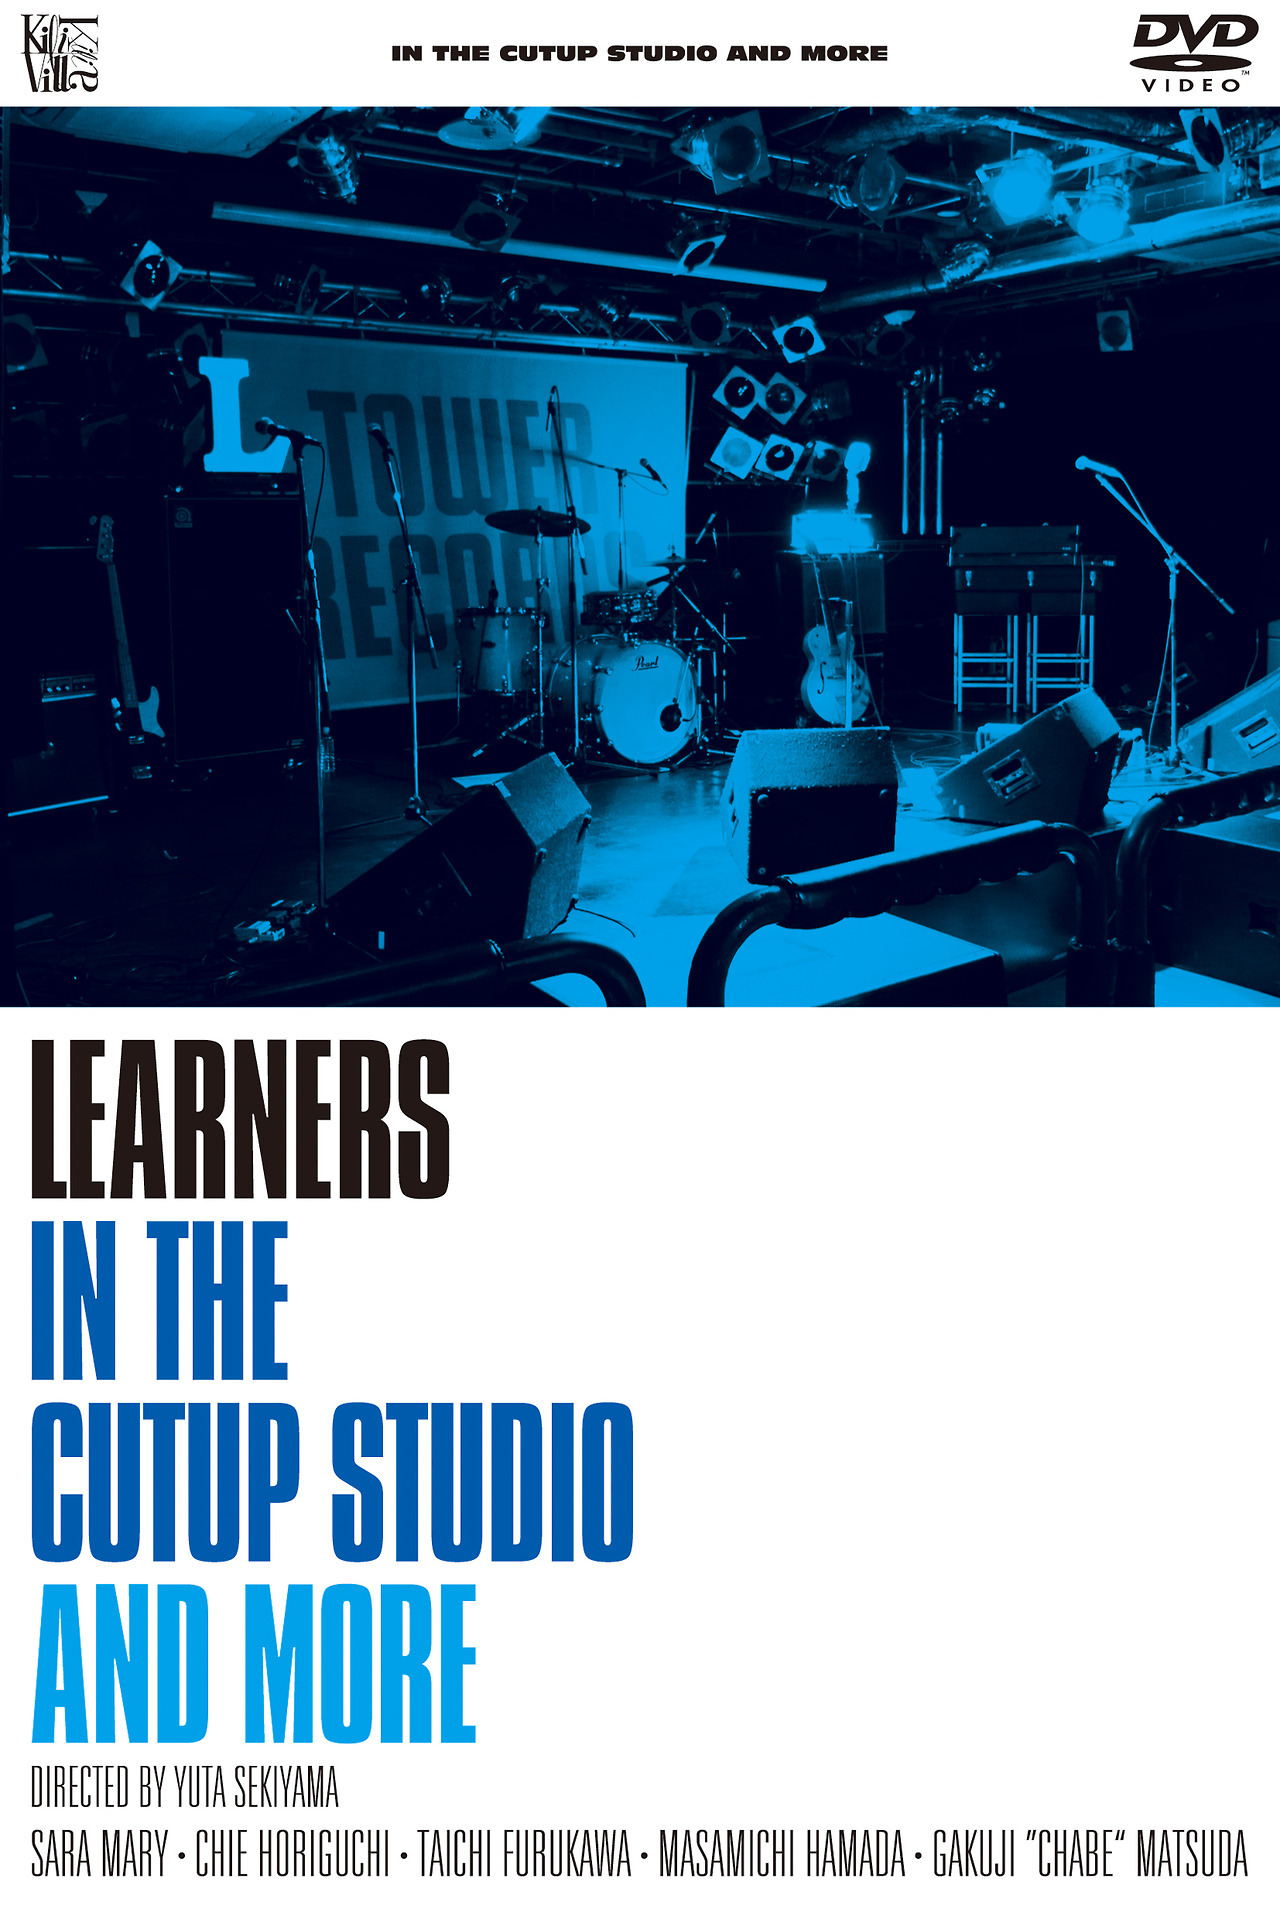 LEARNERS『IN THE CUTUP STUDIO AND MORE』